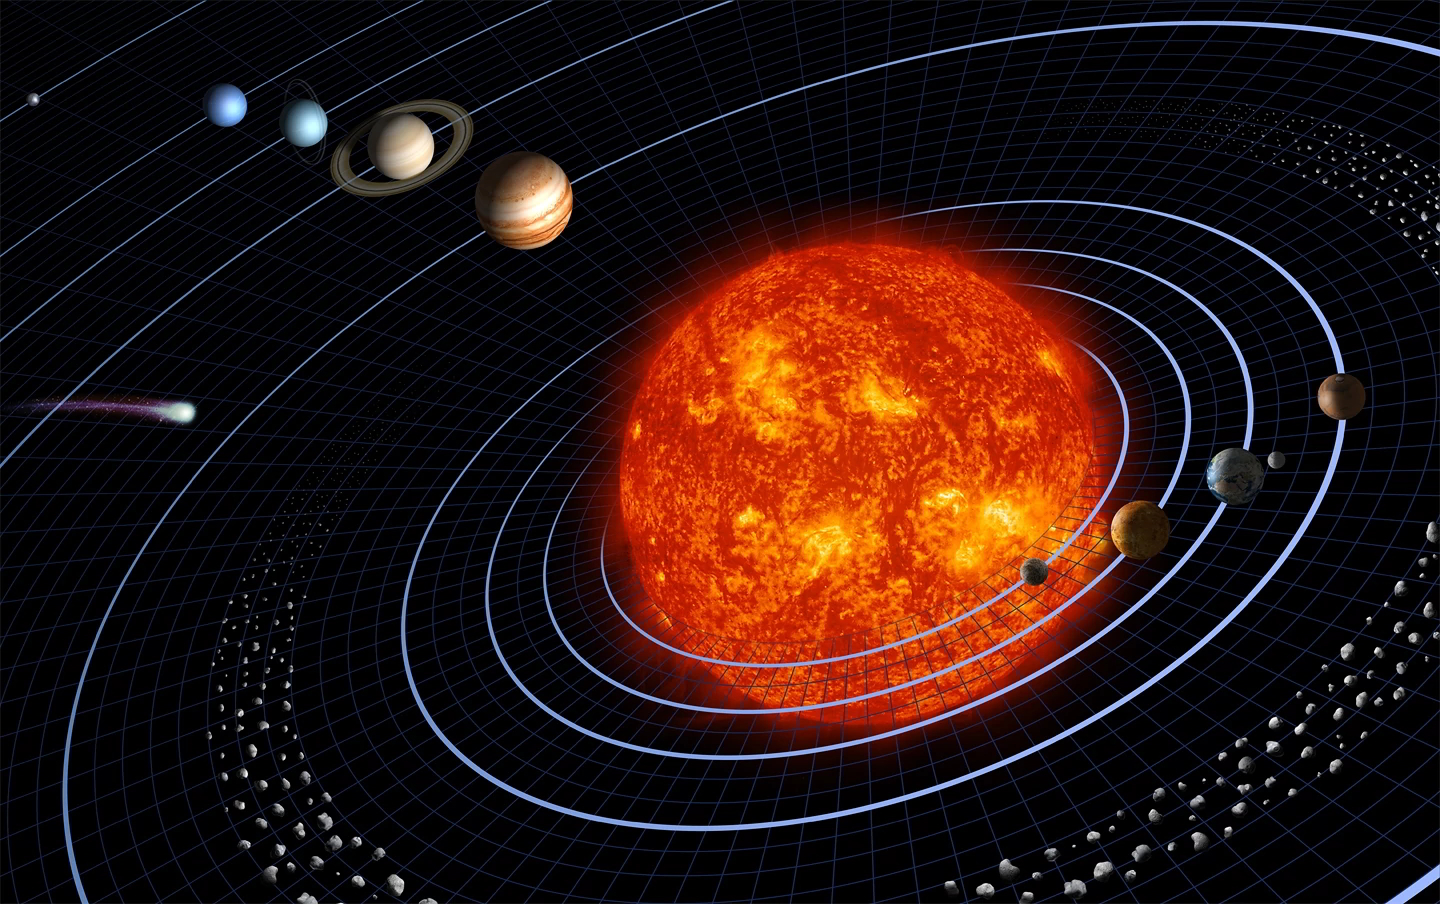 The Law of Gravity maintains the orbits of the planets - Credit: NASA, after Harman Smith and Laura Generosa.